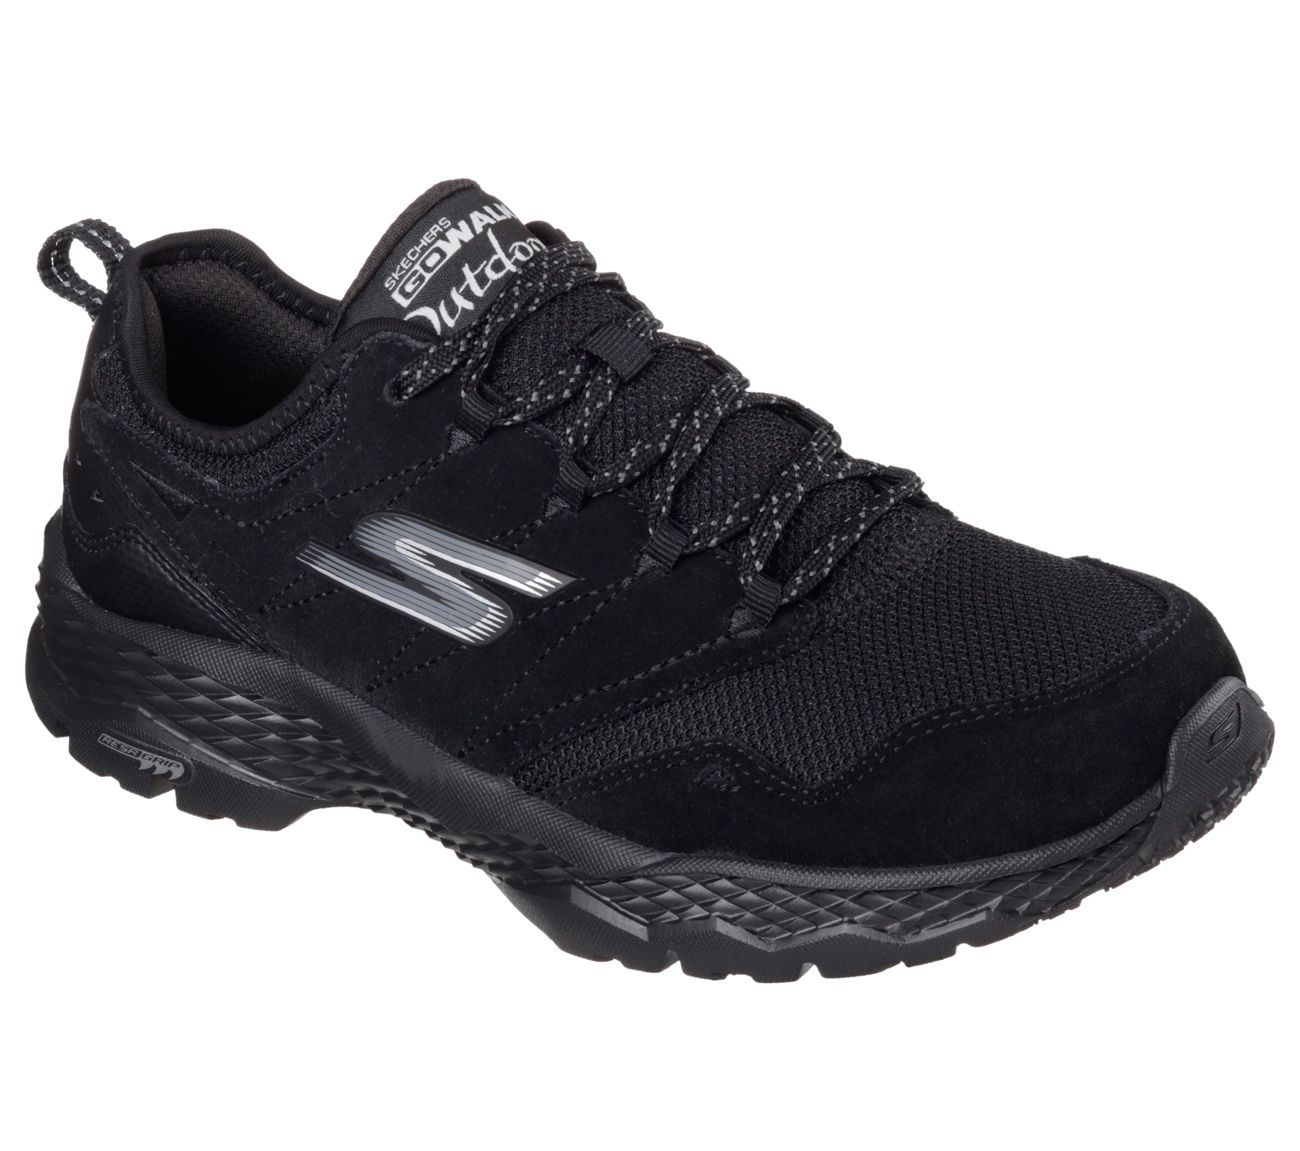 14131 Black Skechers Shoe Women Go Walk Outdoor Grip Water Resistant Sport  Trail